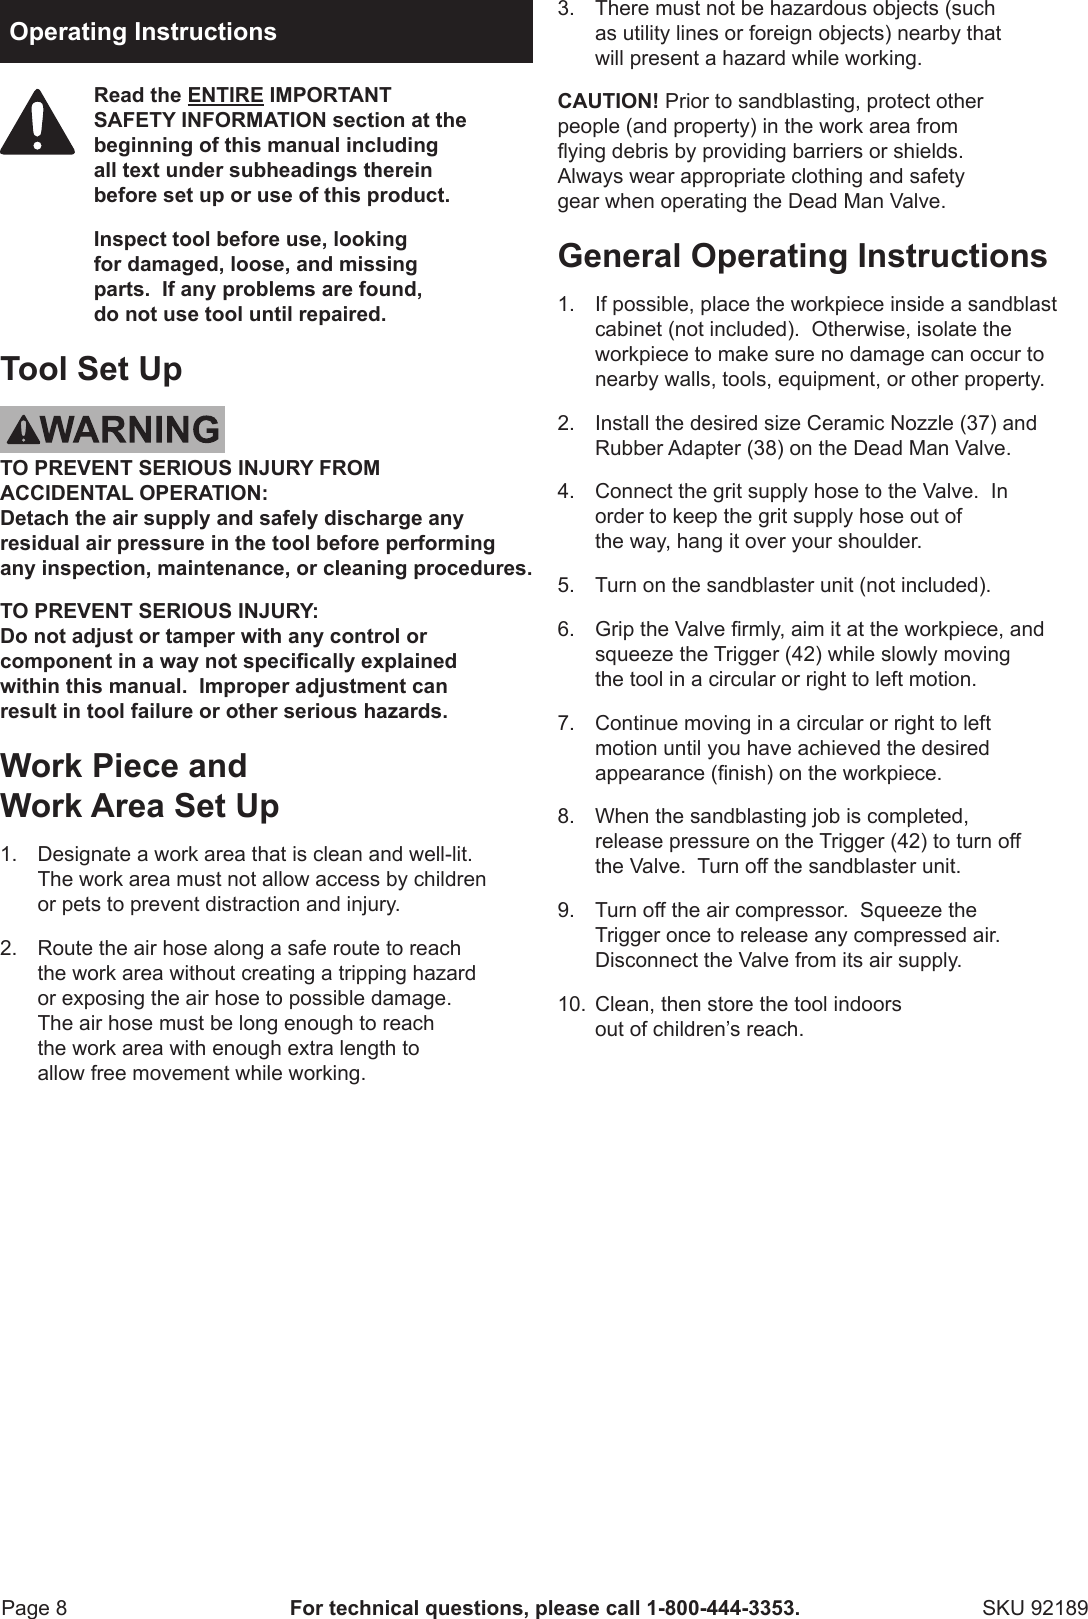 Harbor Freight 92189 Owner S Manual